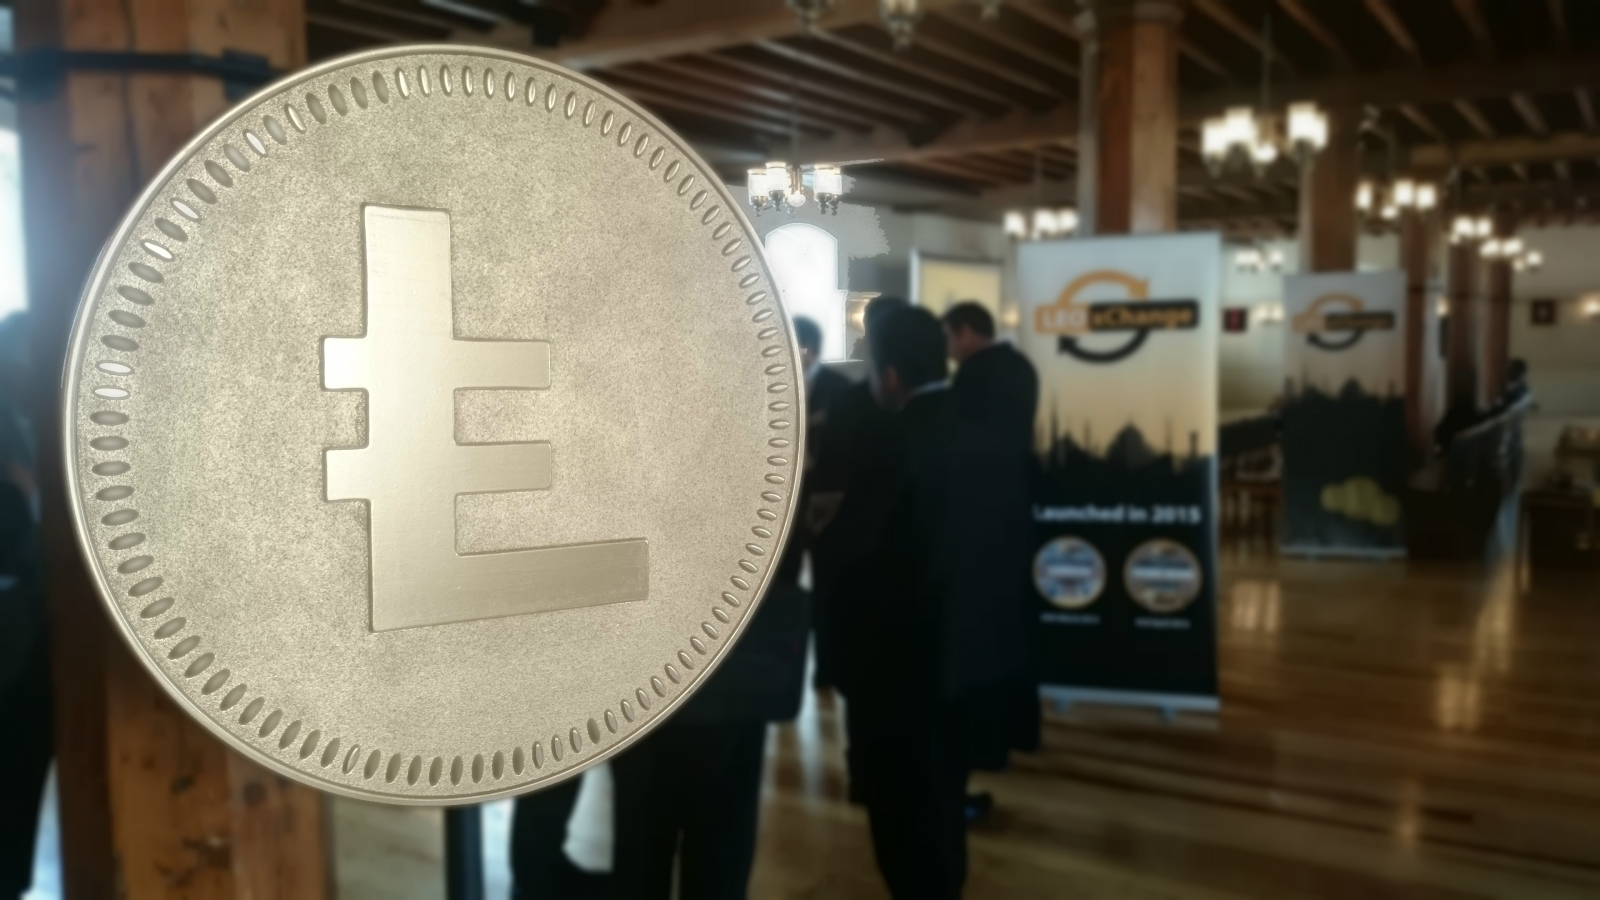 leocoin bitcoin exchange cryptocurrency digital